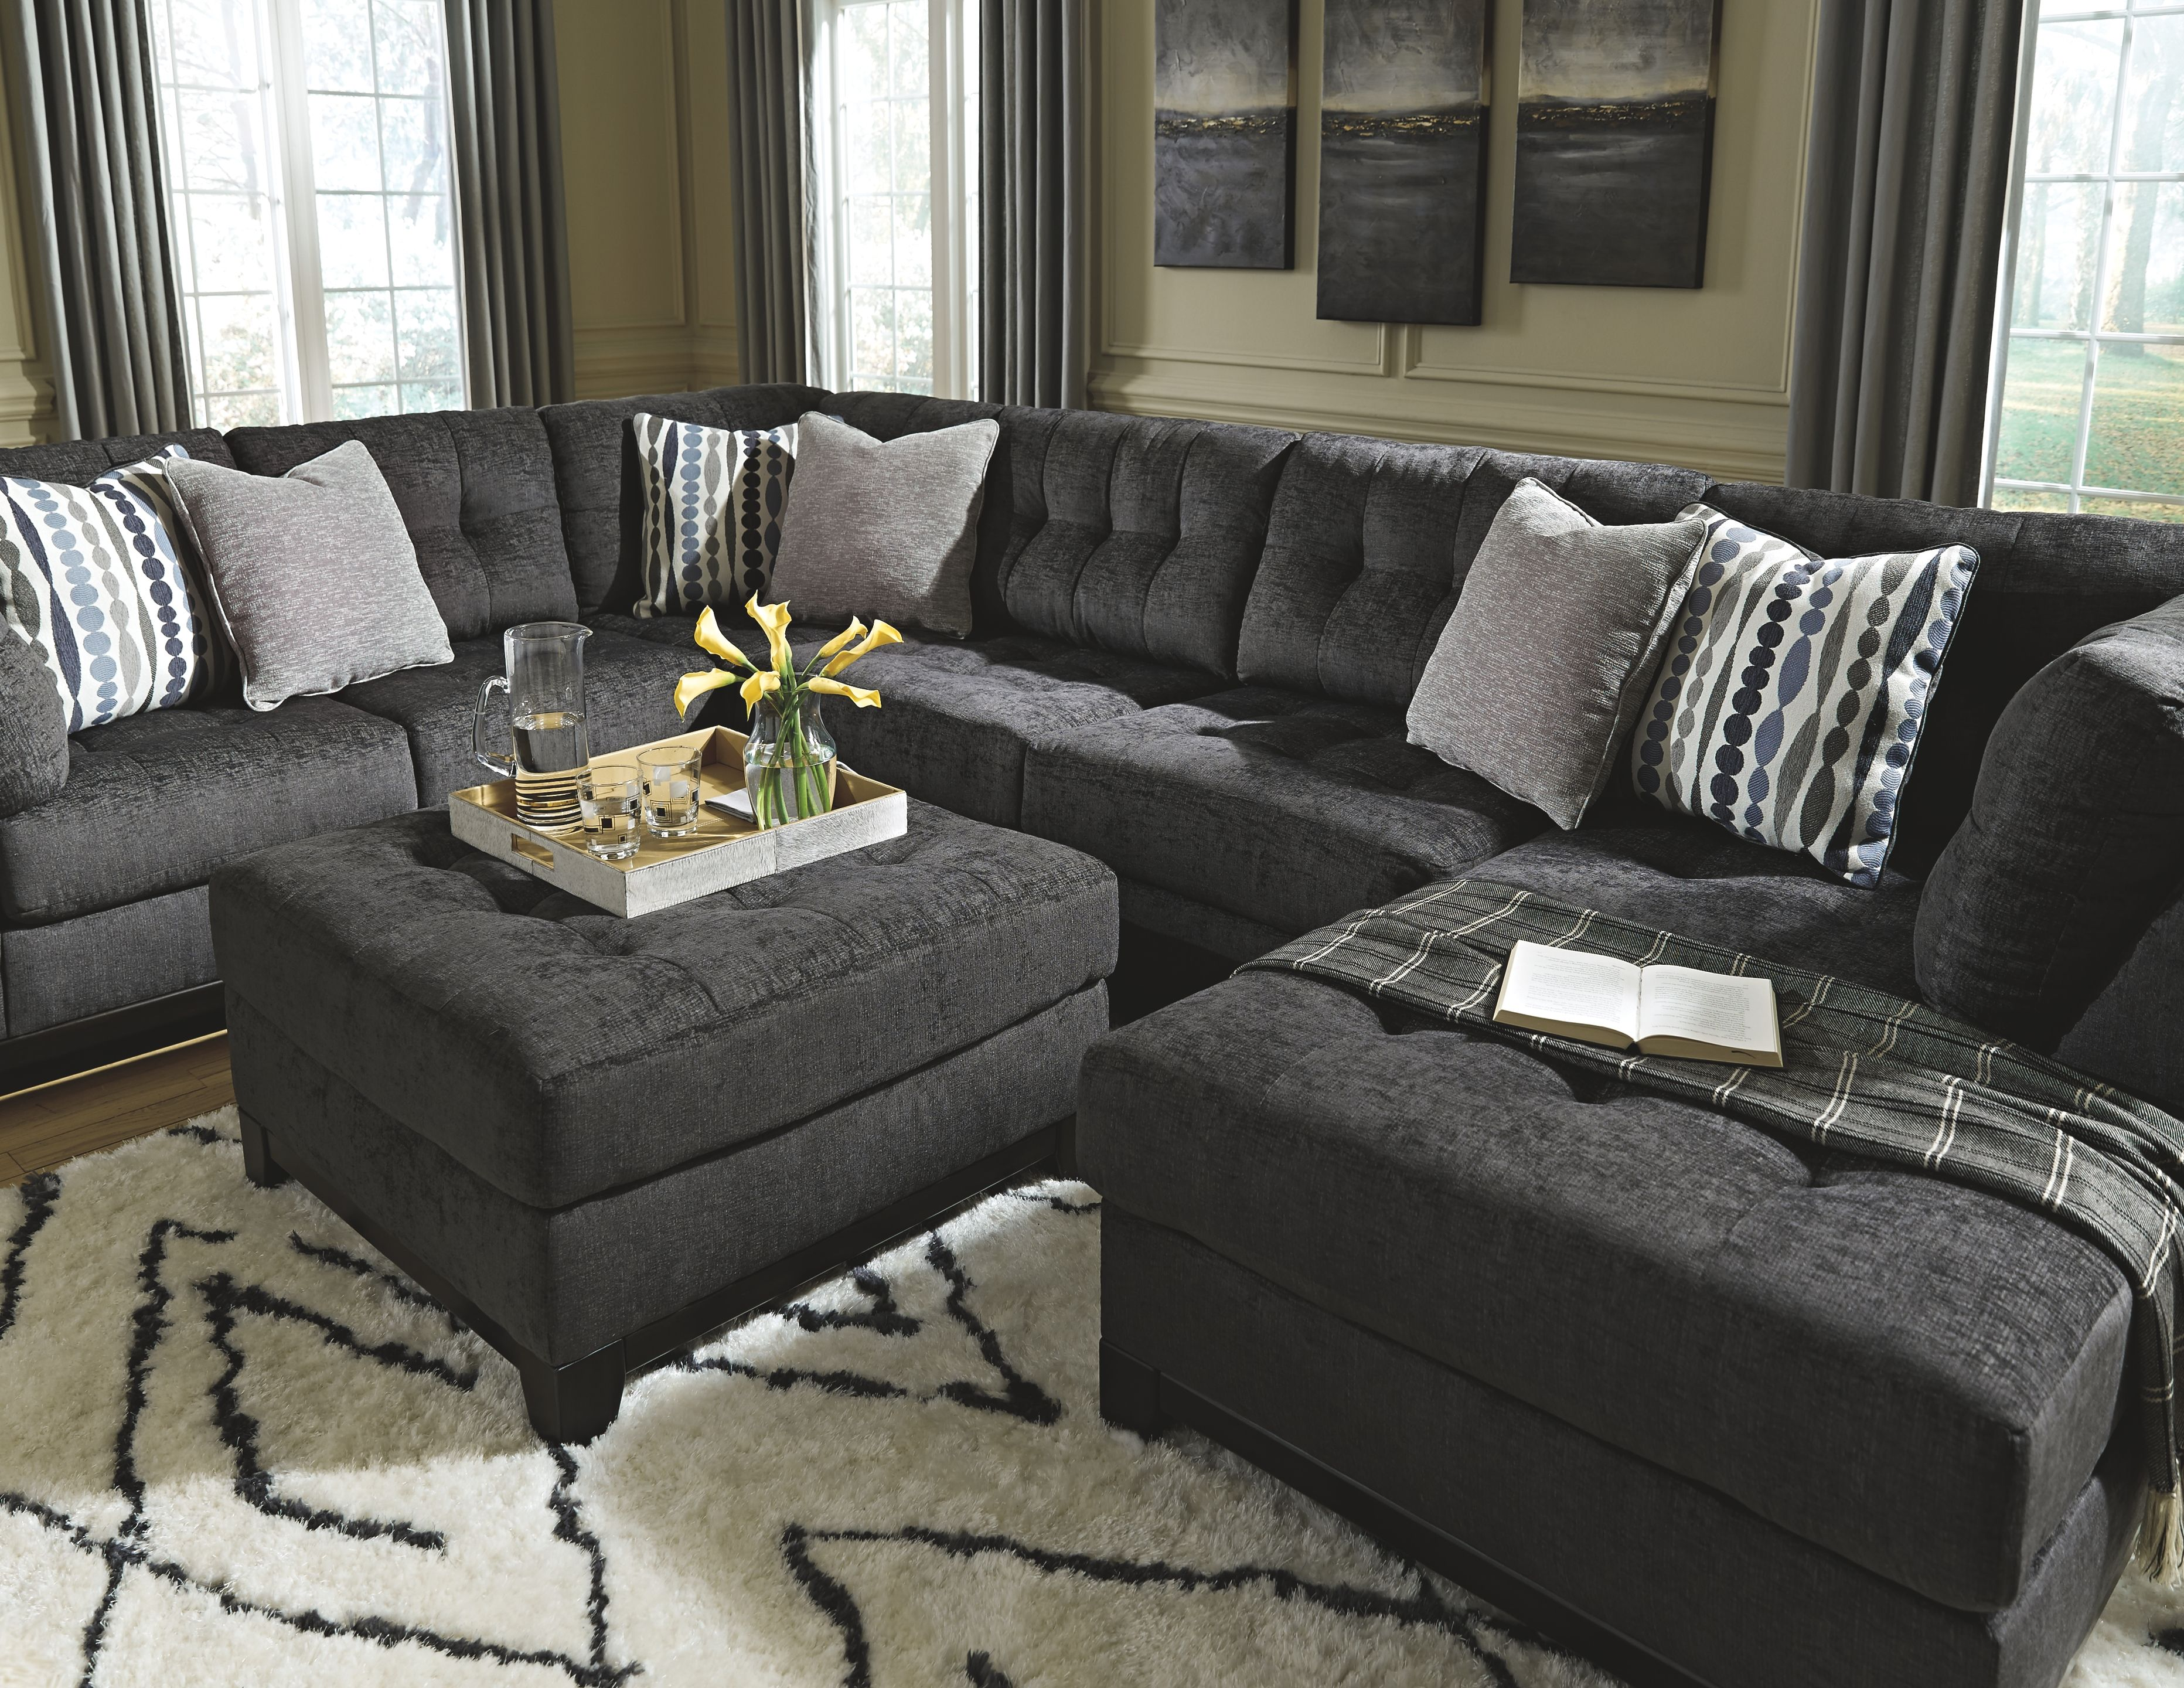 Reidshire Oversized Ottoman In 2020 Grey Couch Living Room Dark Grey Couch Living Room Ashley Furniture Living Room